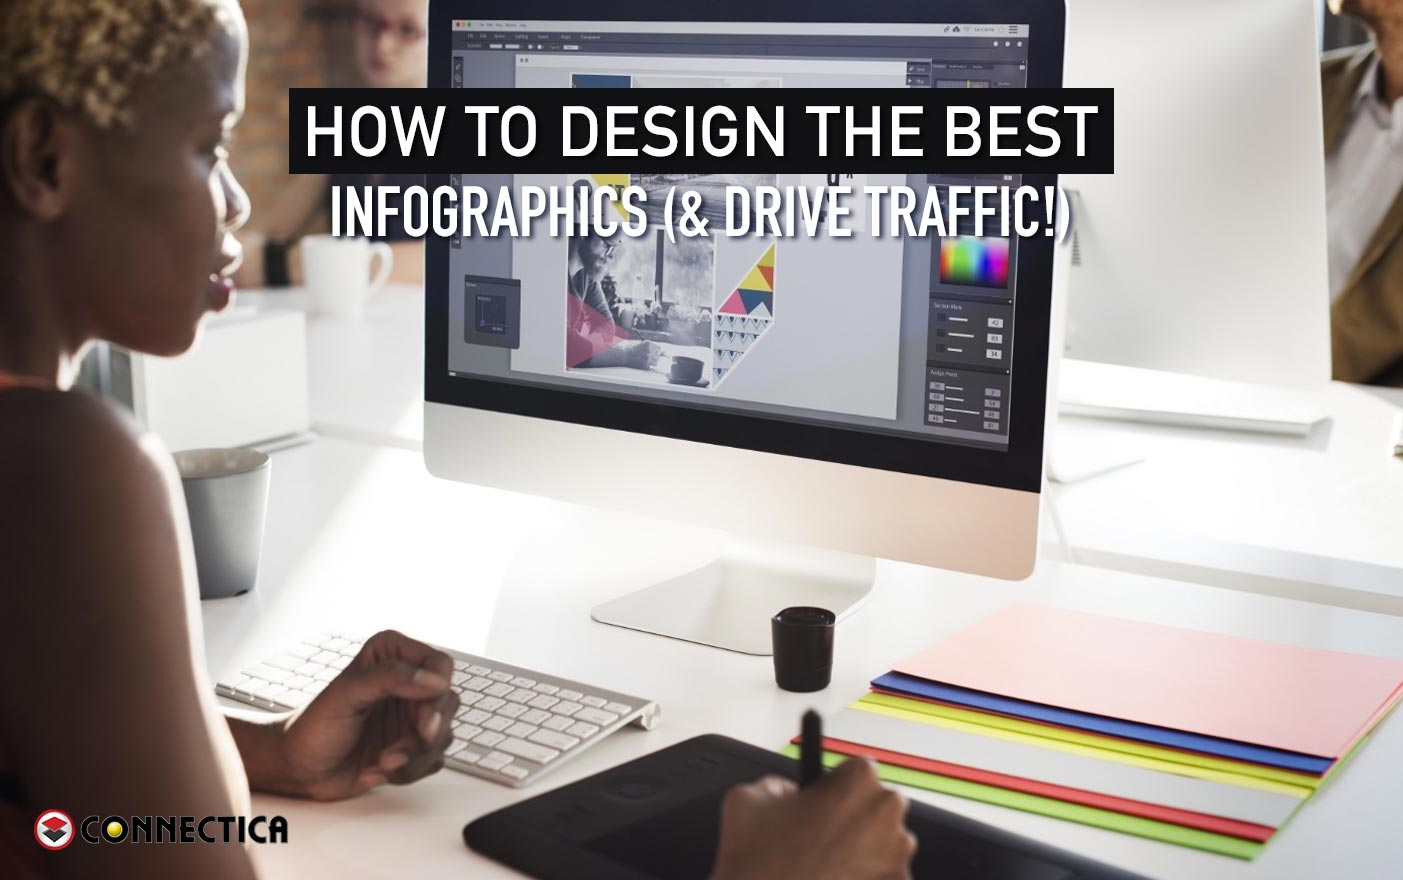 How To Design The Best Infographics (& Drive Traffic!)